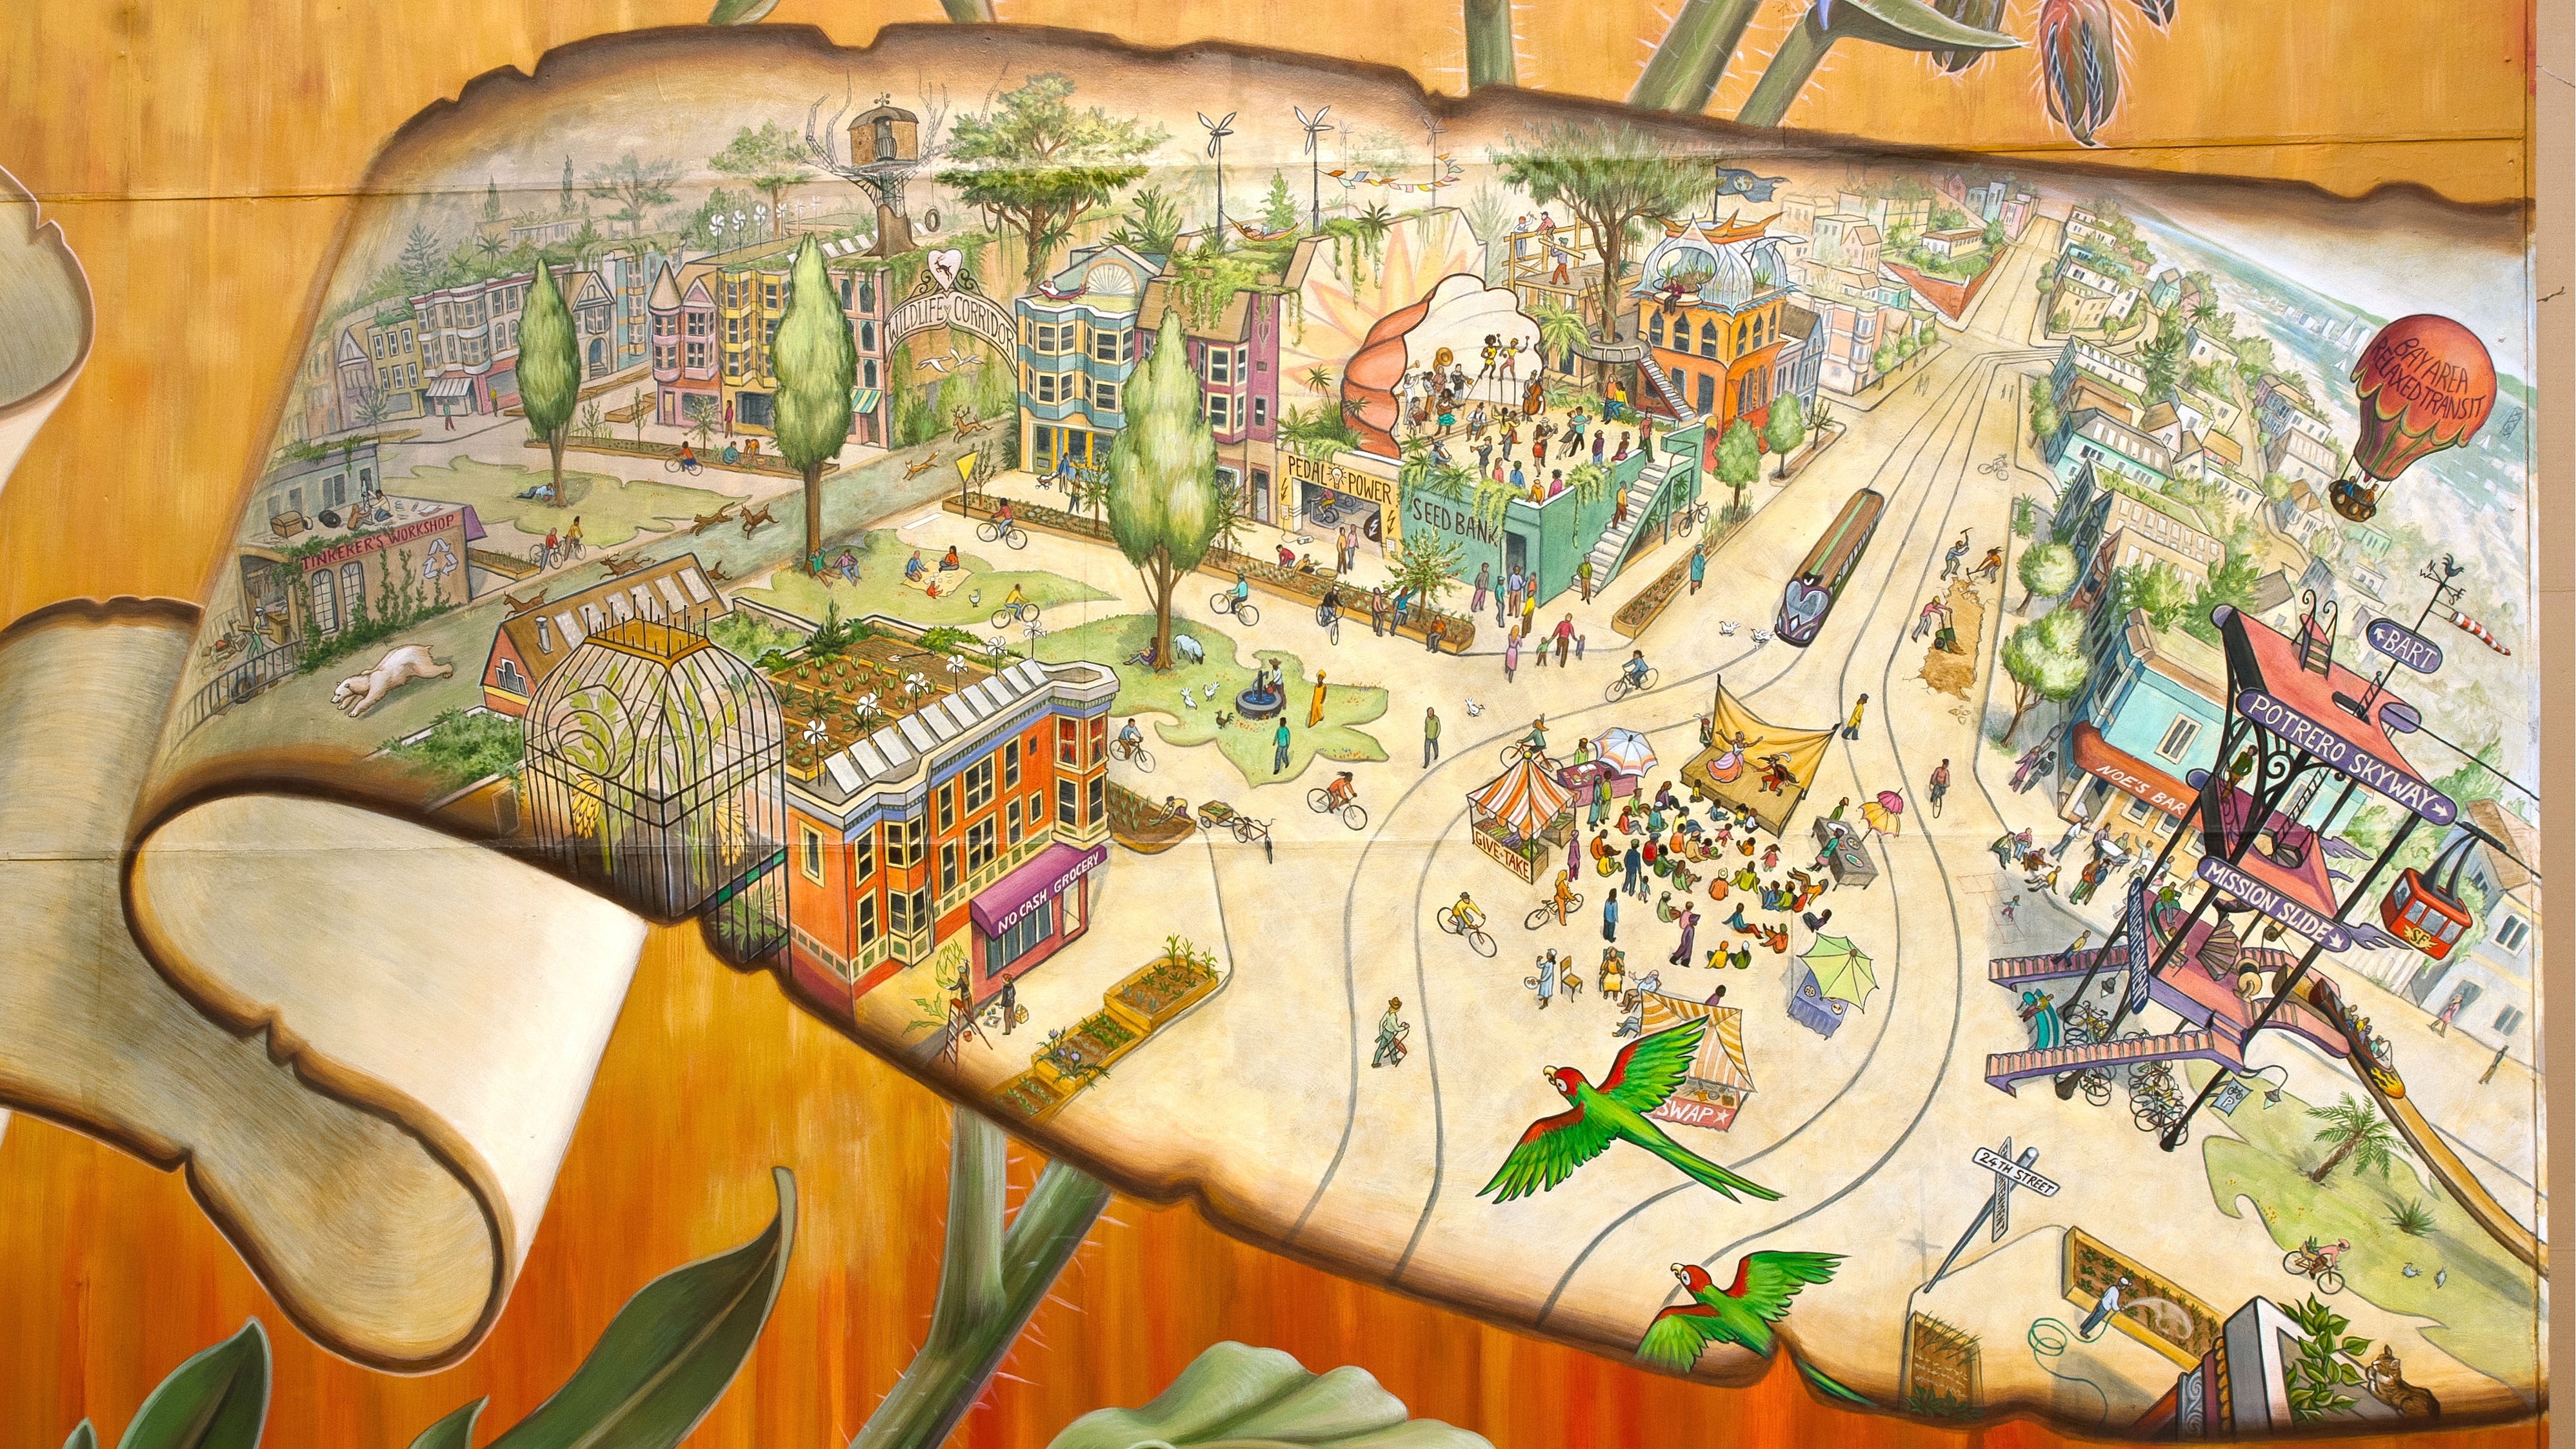 [ZOOMABLE IMAGE] A future fantasy view of 24th and Church St. in San Francisco, within the Noe Valley mural by Mona Caron